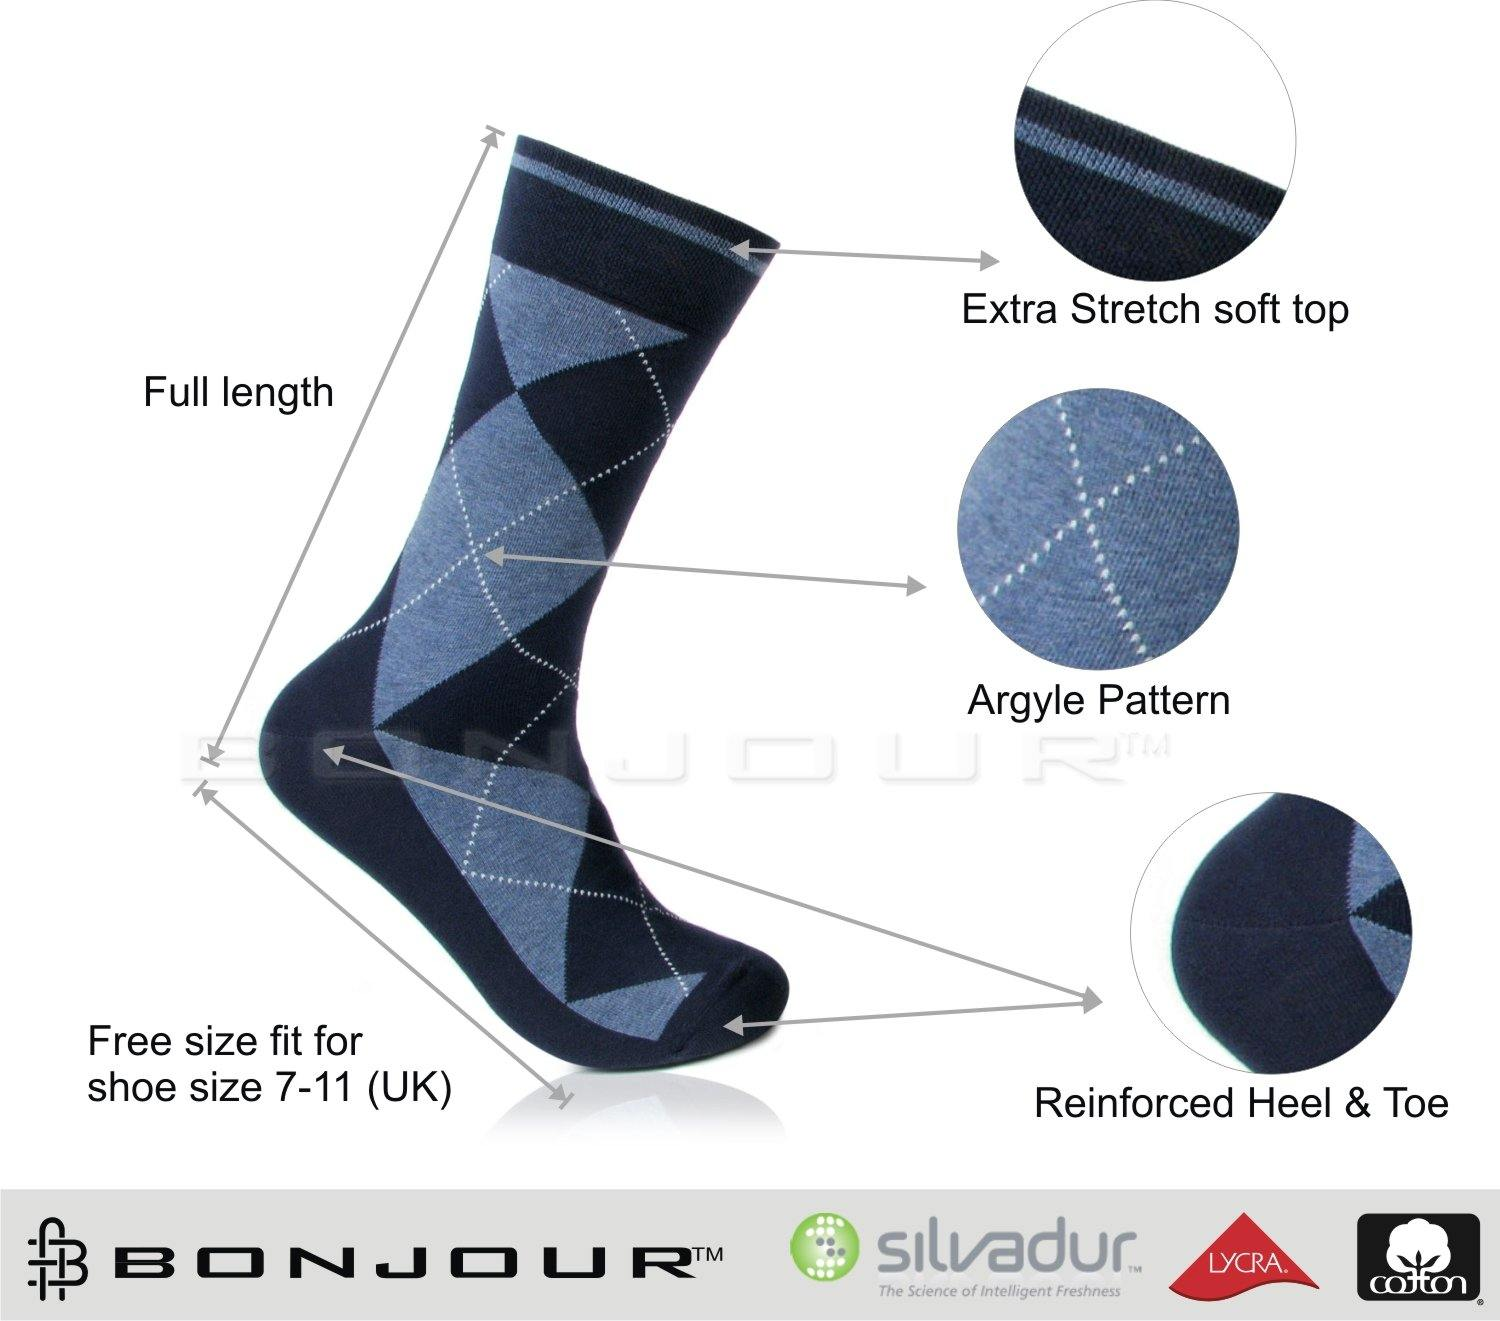 Men's Classic Argyle Formal Multicoloured Crew Length Socks- pack of 3